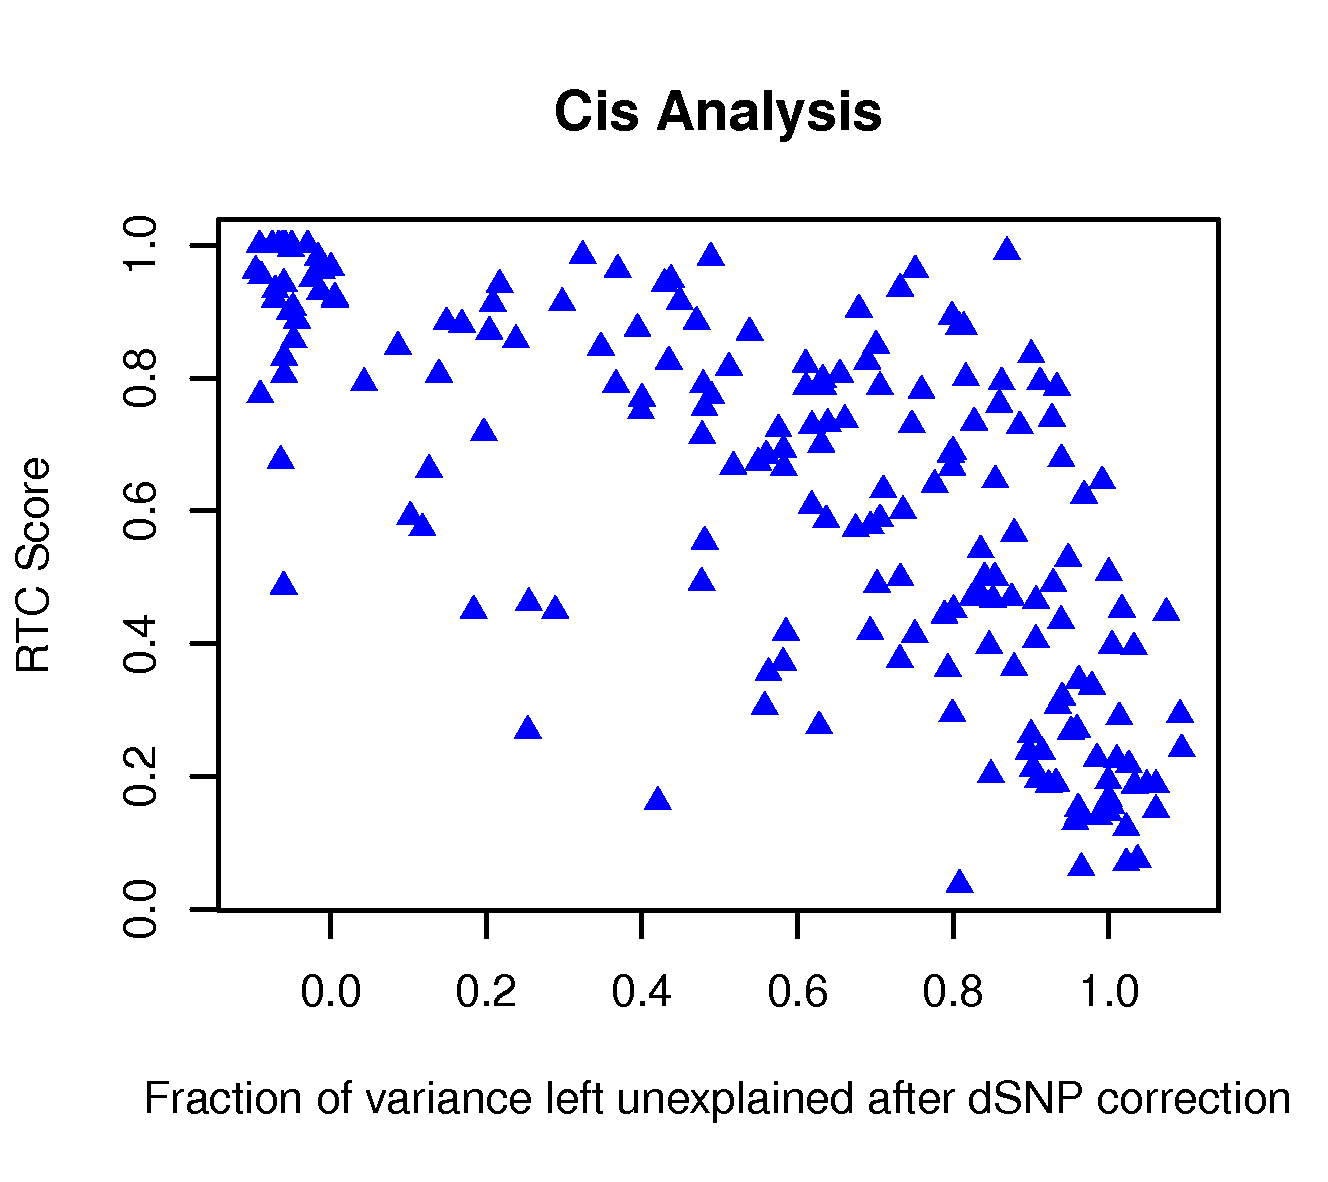 The fraction of eQTL variance explained away by the dSNP versus the RTC score.